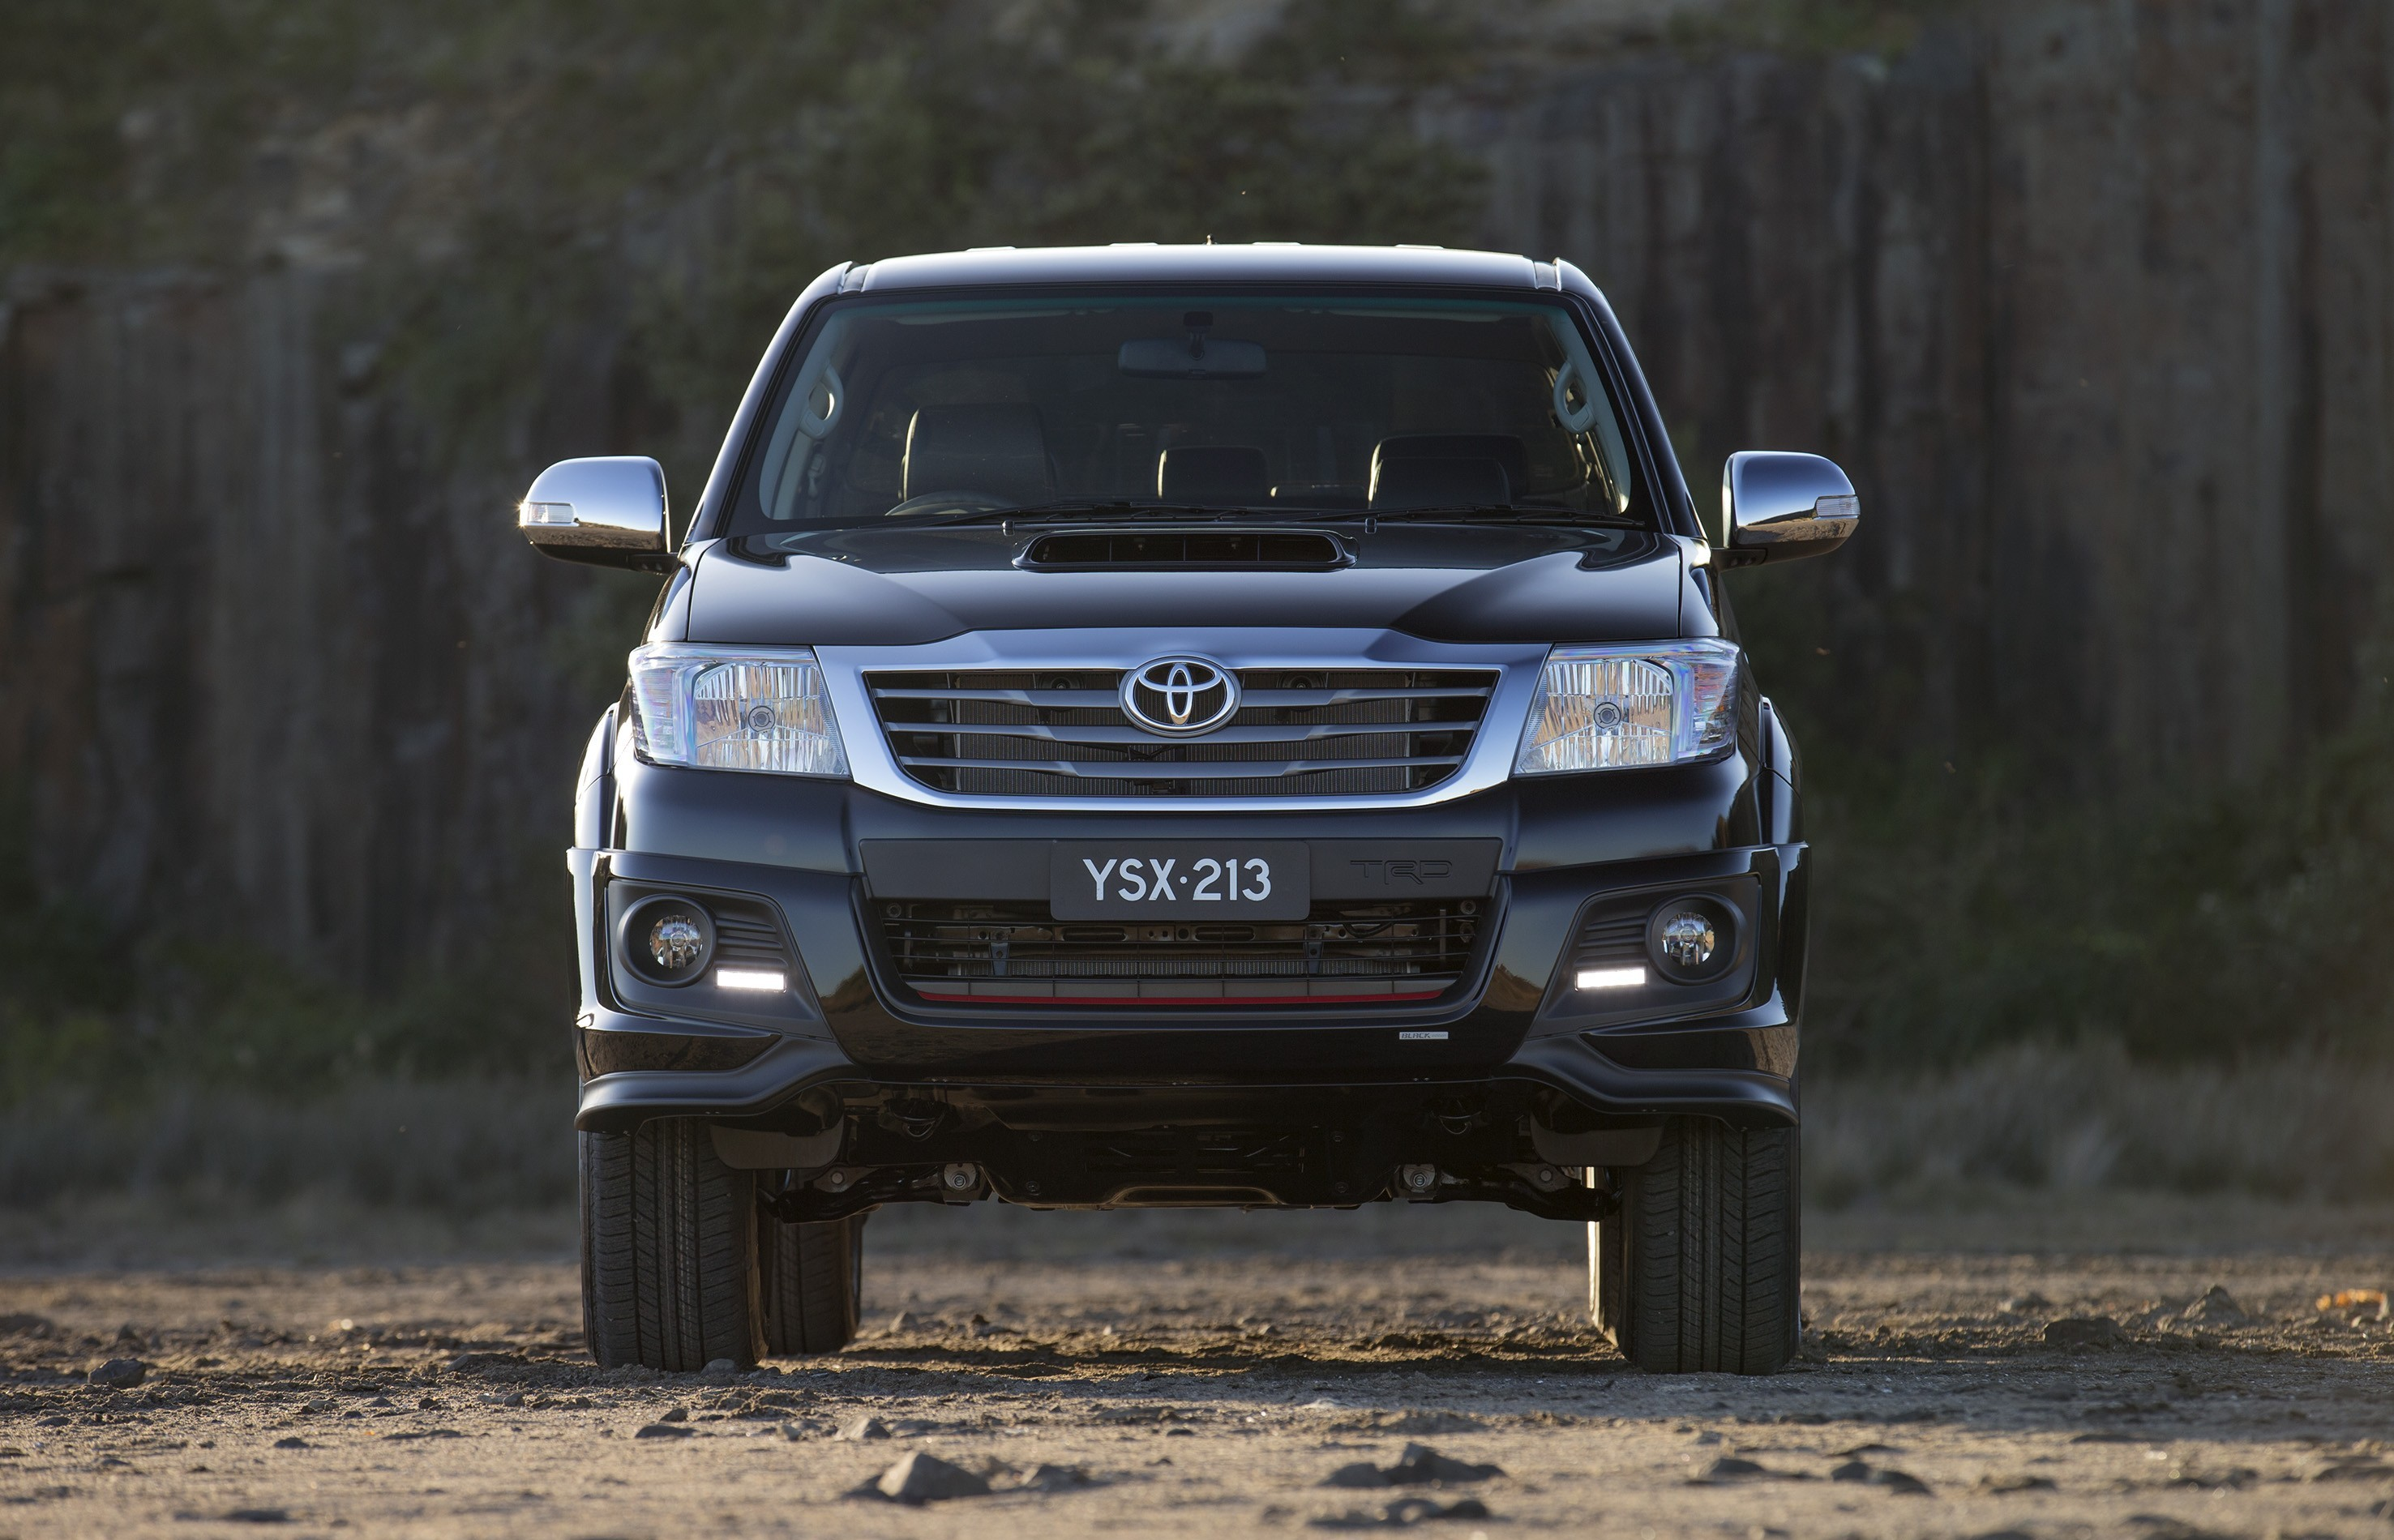 Toyota Hilux Hd Wallpaper Background Image 2953x1900 Id 548864